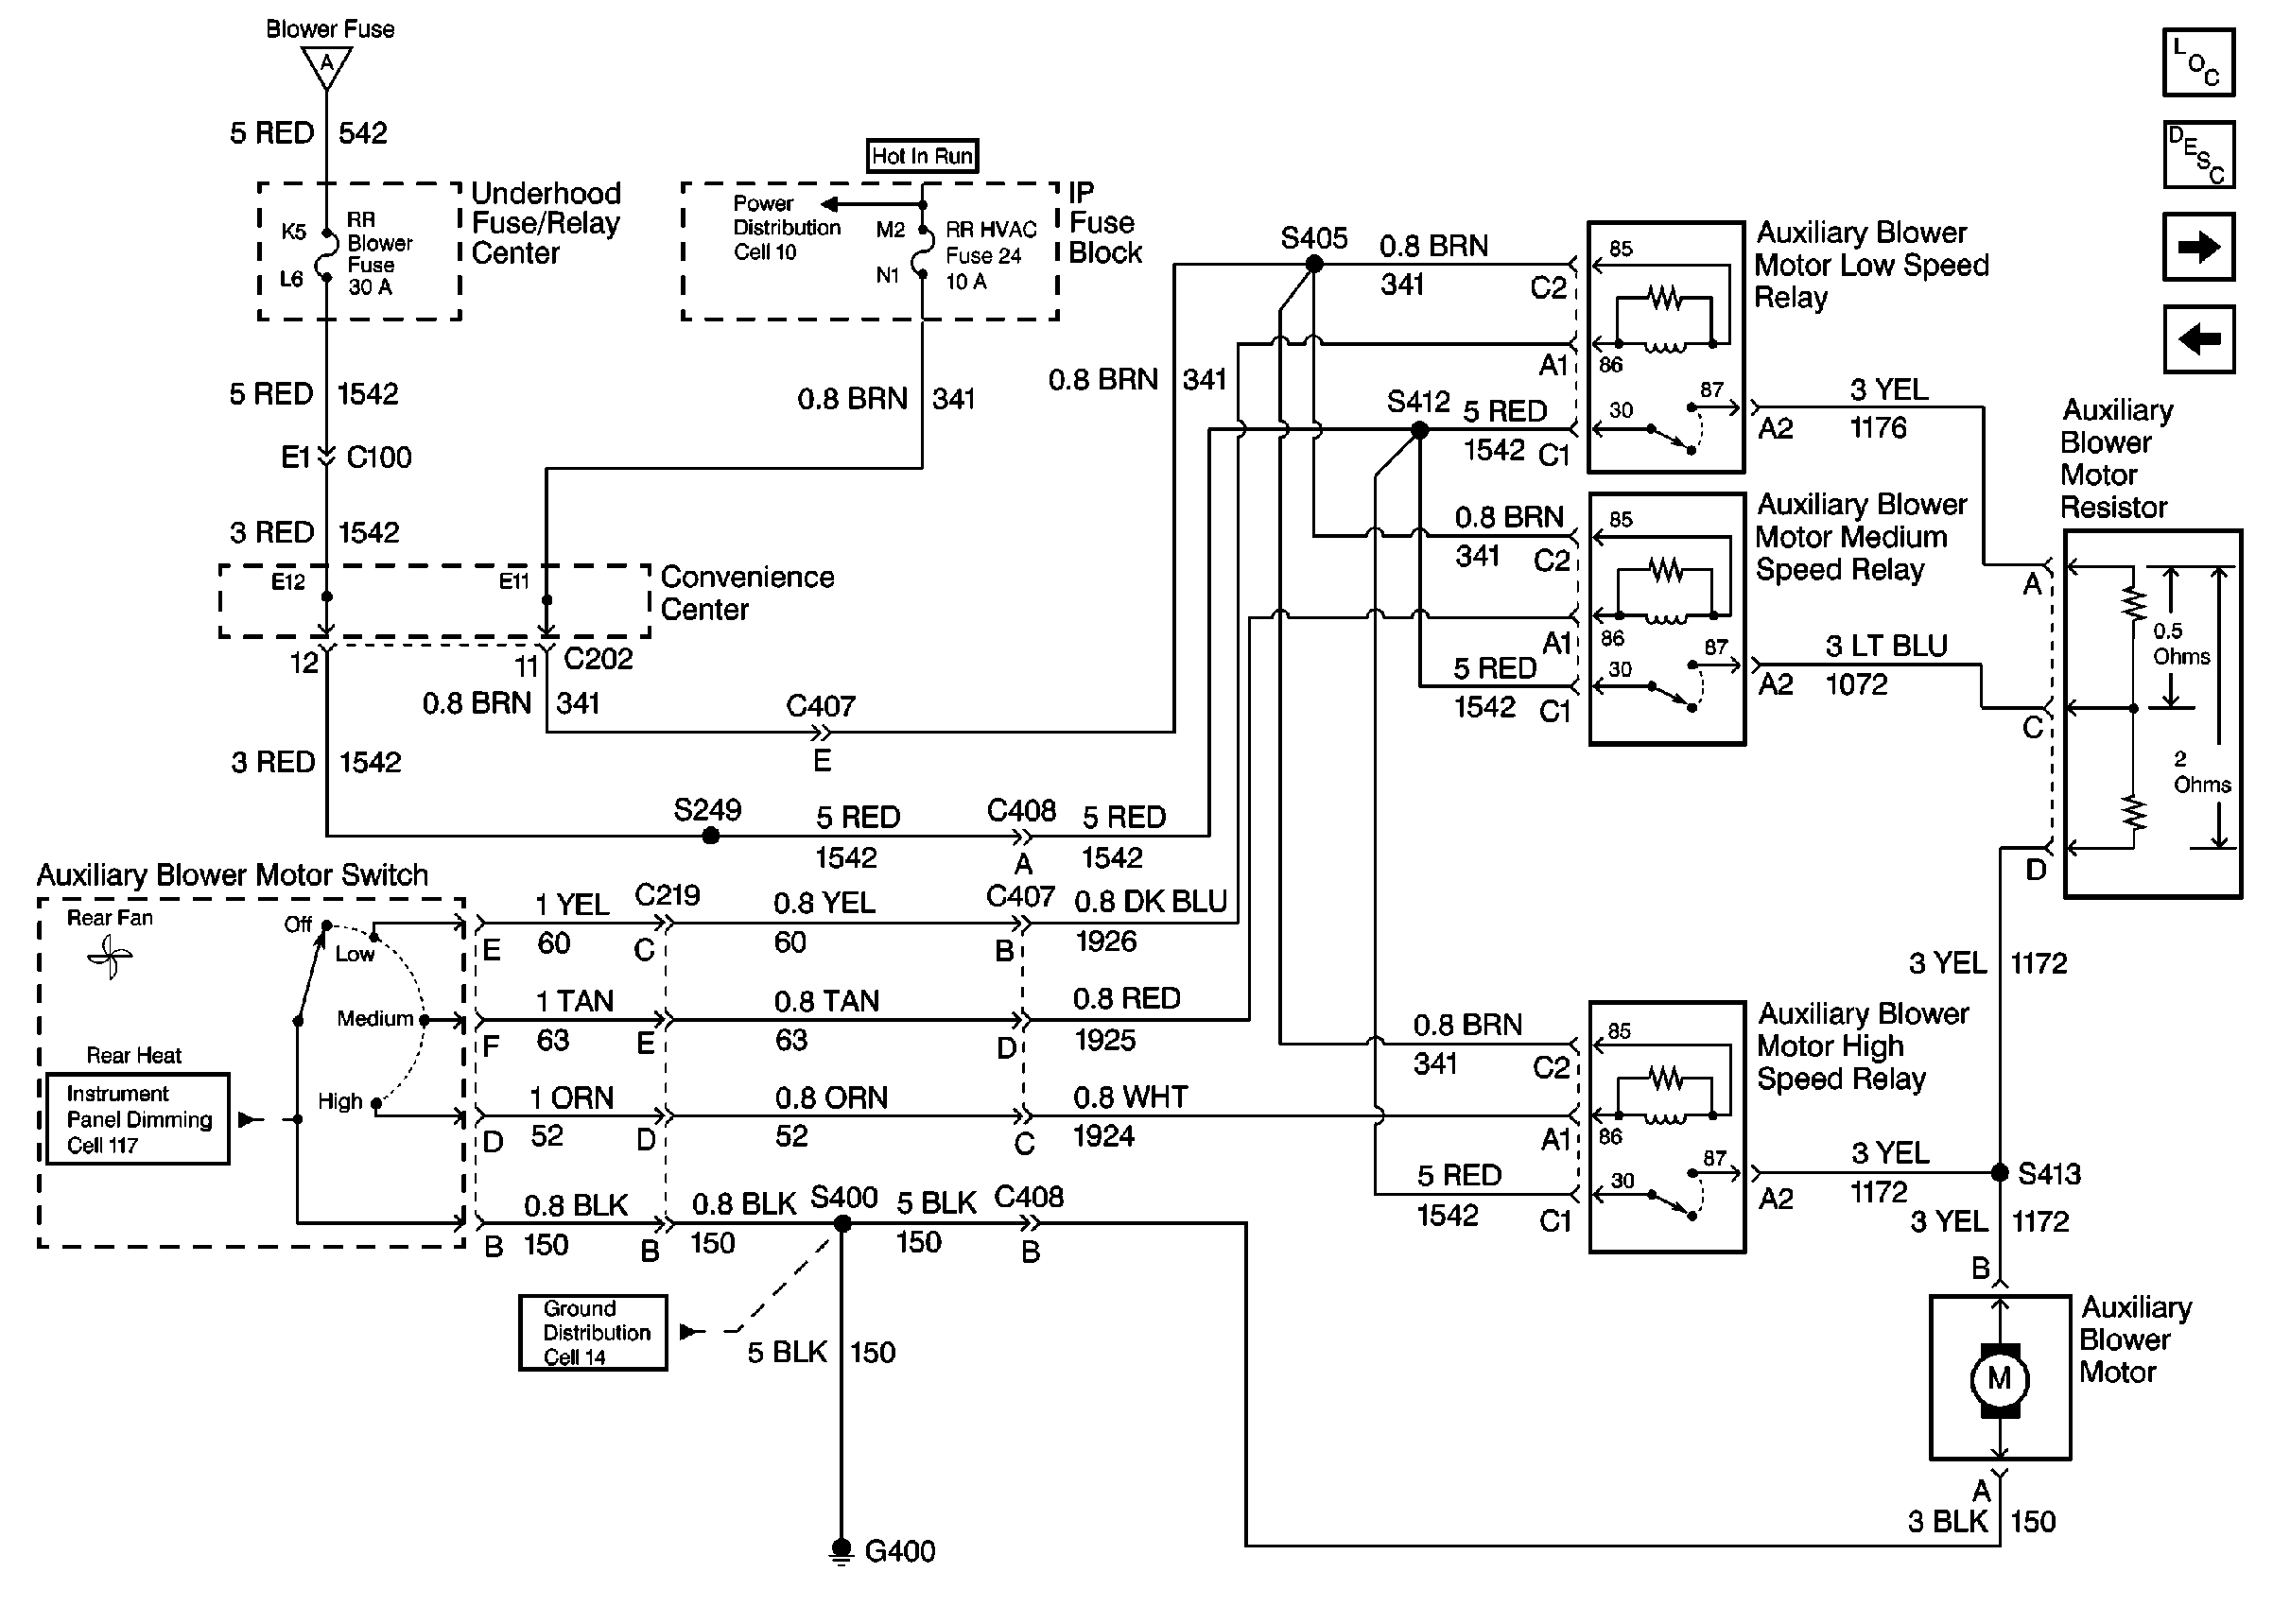 chevrolet trailer wiring harness diagram 1999 get free image about wiring  diagram 2008 Silverado Wiring Schematic 2001 Chevy Silverado 1500 Wiring  Diagram